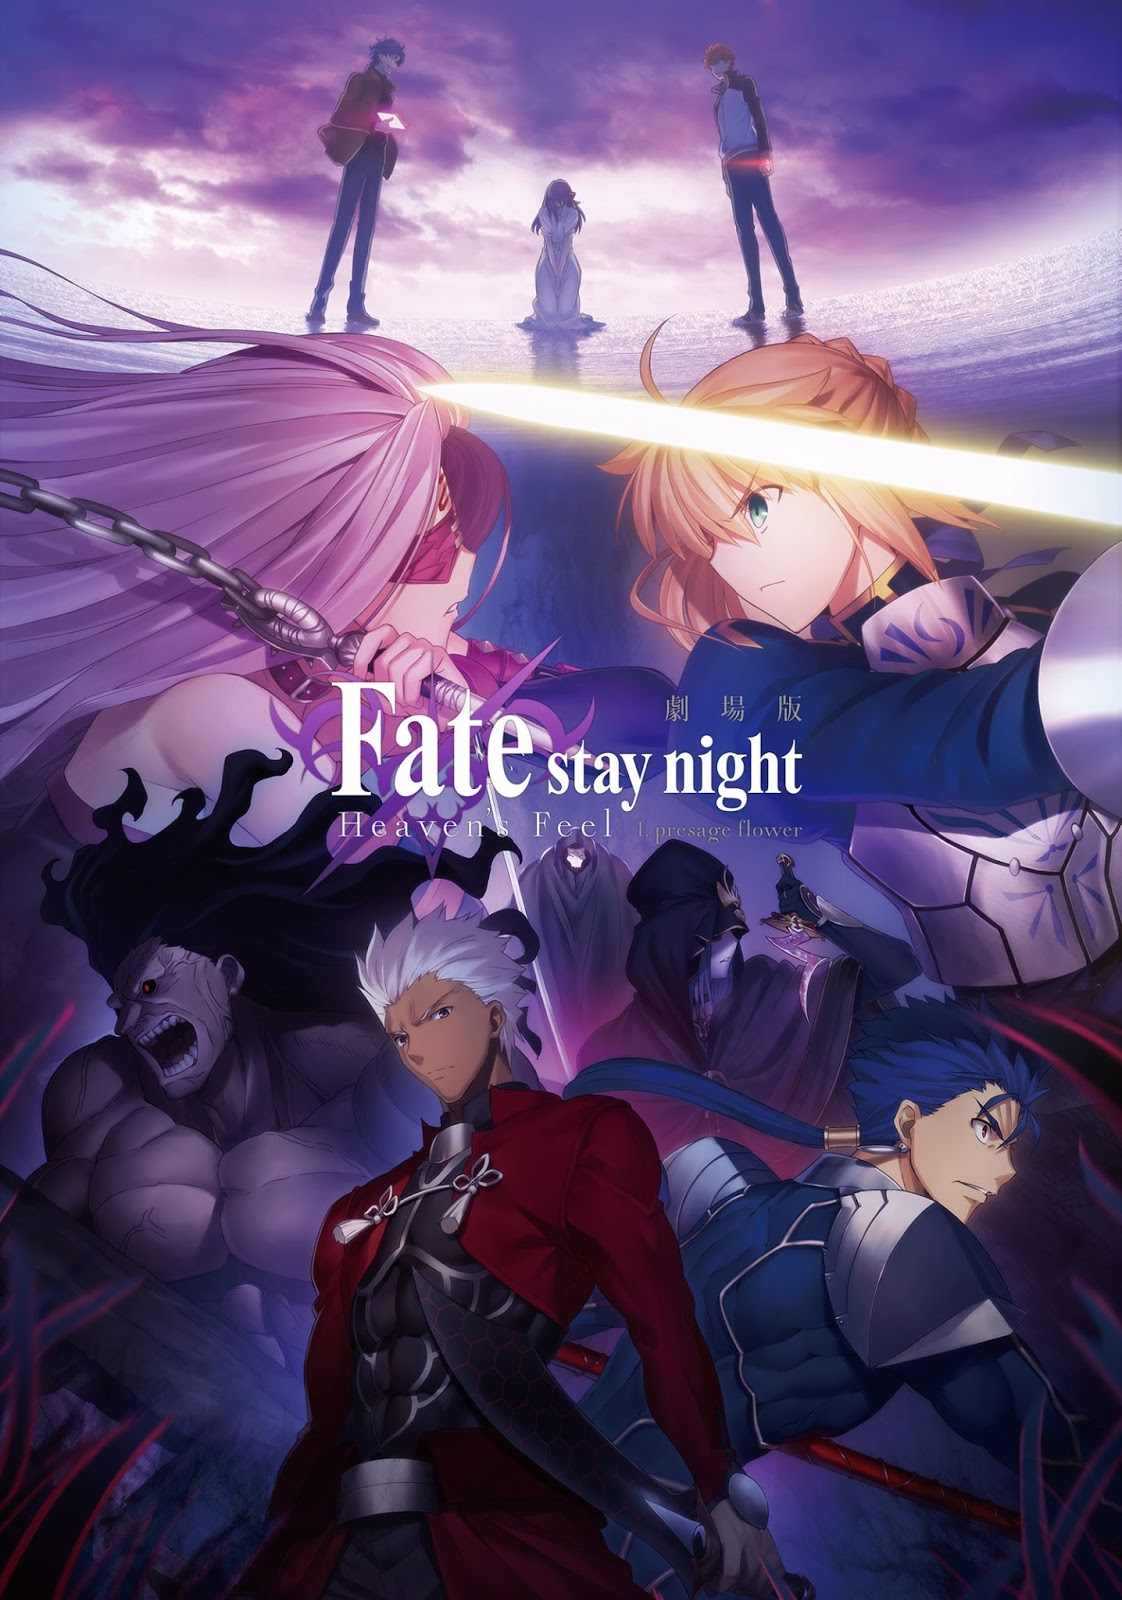 The upcoming anime film fate stay night heavens feel 1 presage flower 劇場版 fate stay night heavens feel 第一章「presage flower